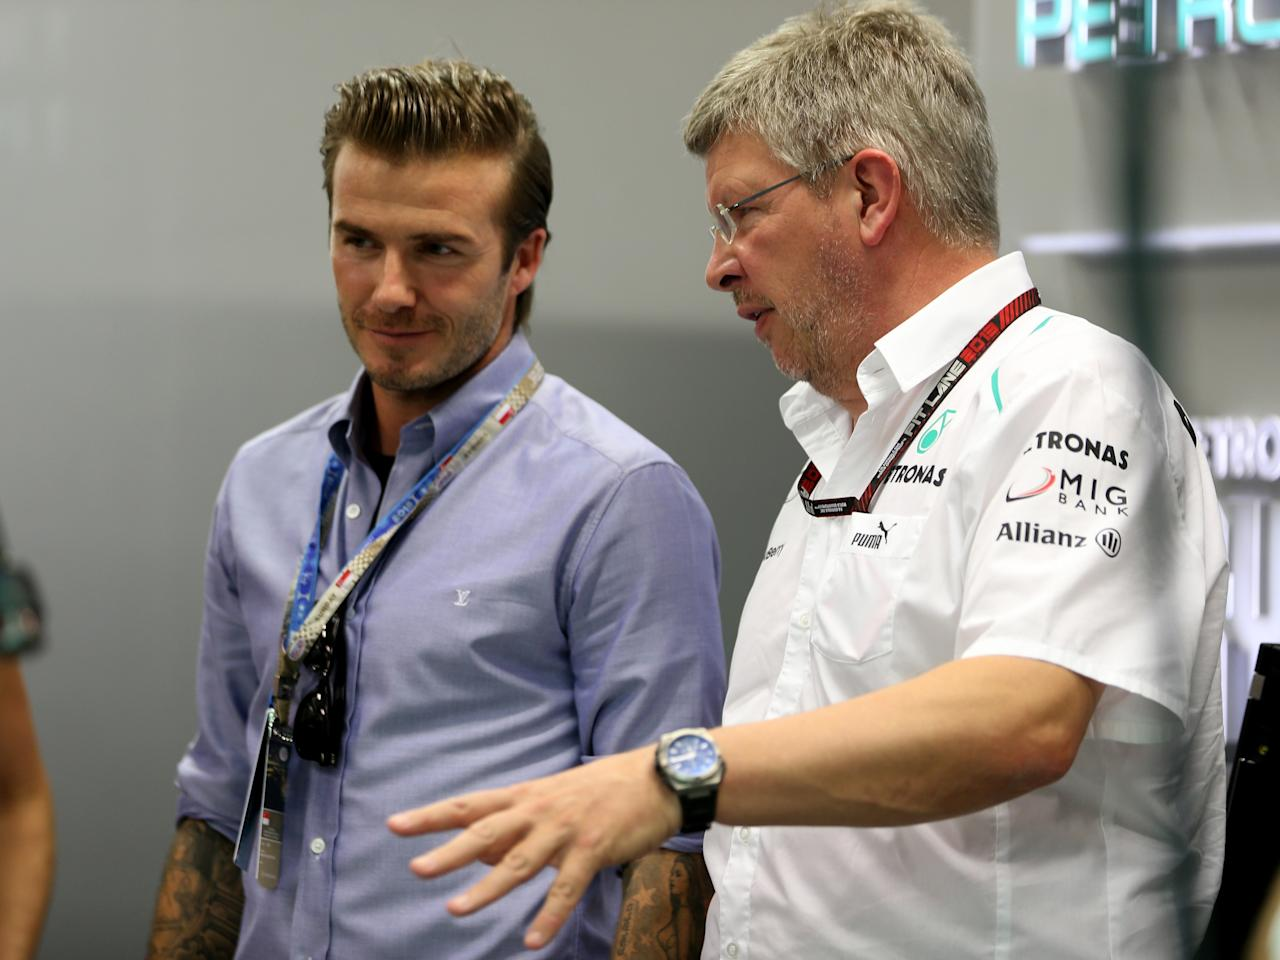 SINGAPORE - SEPTEMBER 22: David Beckham is given a tour of the Mercedes GP team garage by Mercedes GP Team Principal Ross Brawn during the Singapore Formula One Grand Prix at Marina Bay Street Circuit on September 22, 2013 in Singapore, Singapore. (Photo by Mark Thompson/Getty Images)